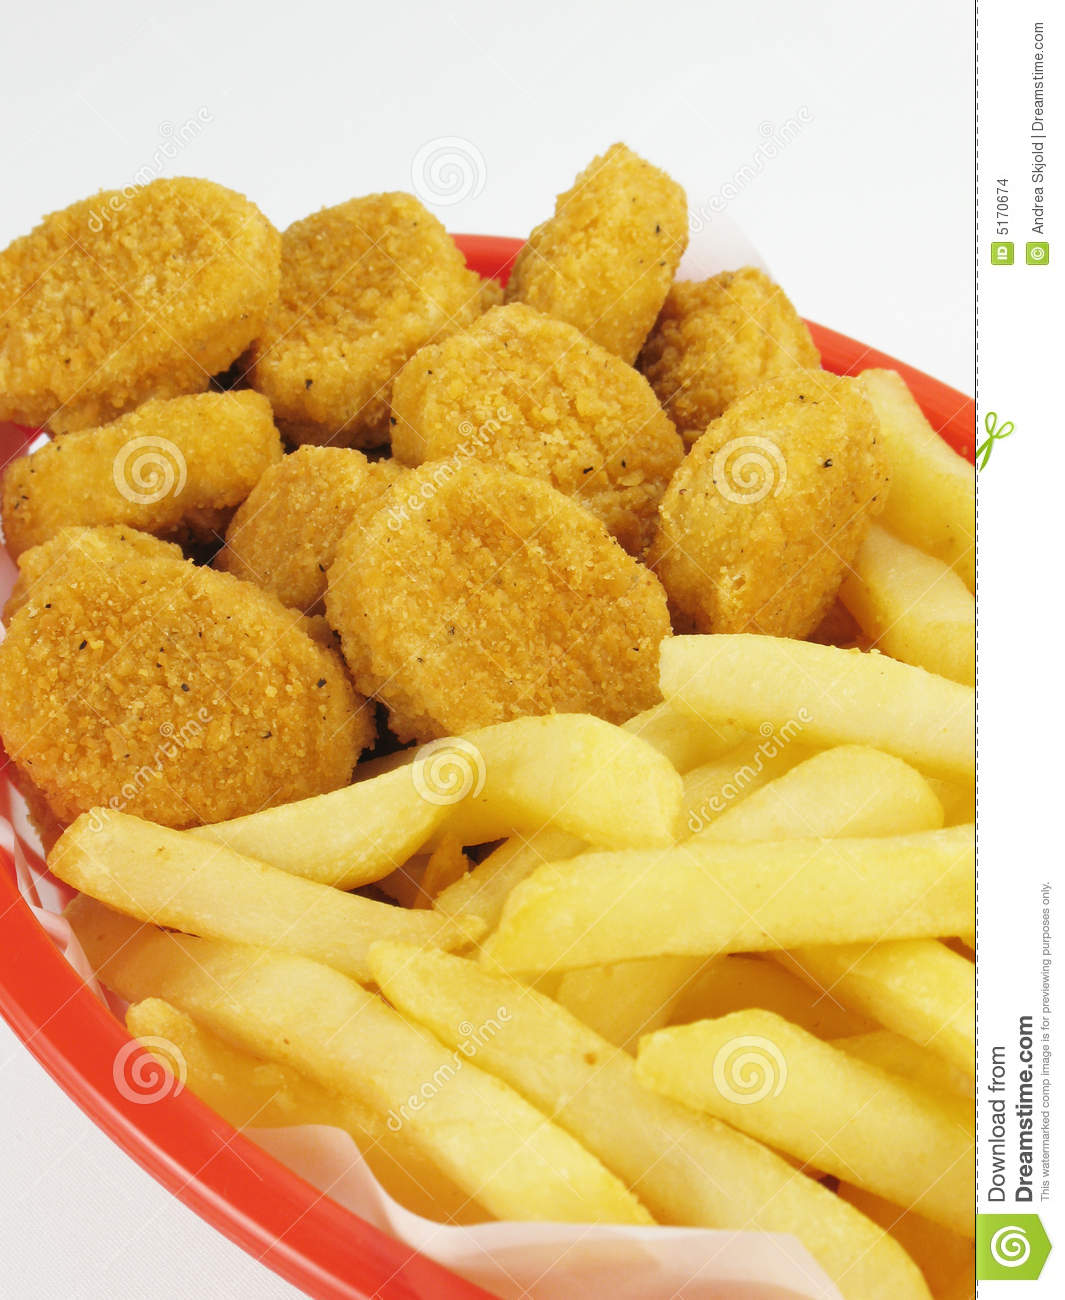 Fries & Chicken Nuggets Stock Images - Image: 5170674